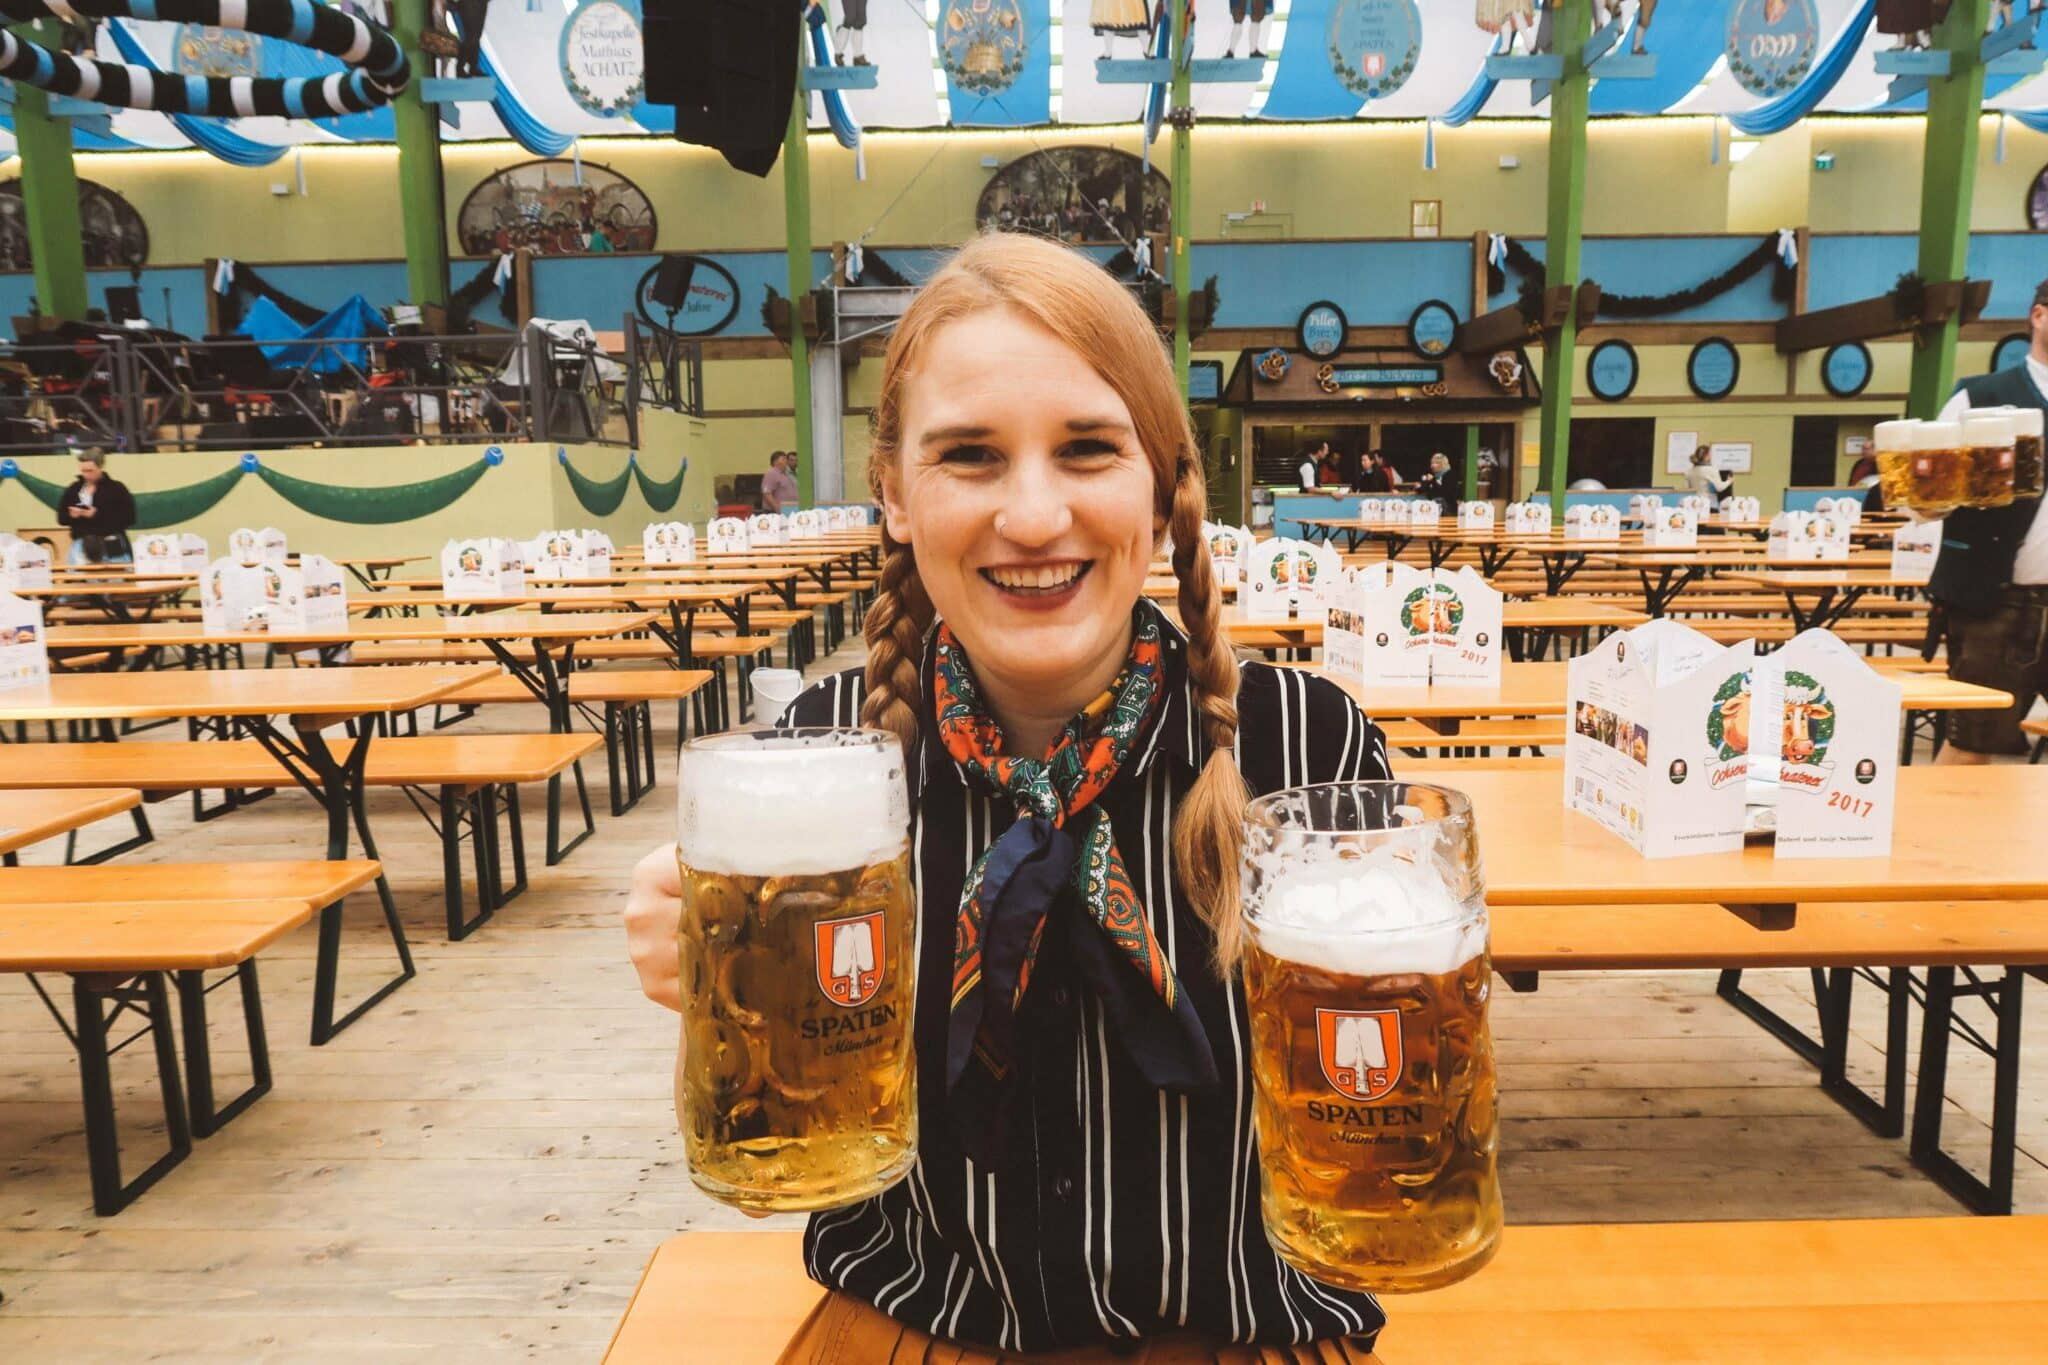 Beginners Guide To Oktoberfest u2013 From How to Order Beer To The Best Tents  sc 1 st  Whimsy Soul & Beginners Guide To Oktoberfest - From How to Order Beer To The ...